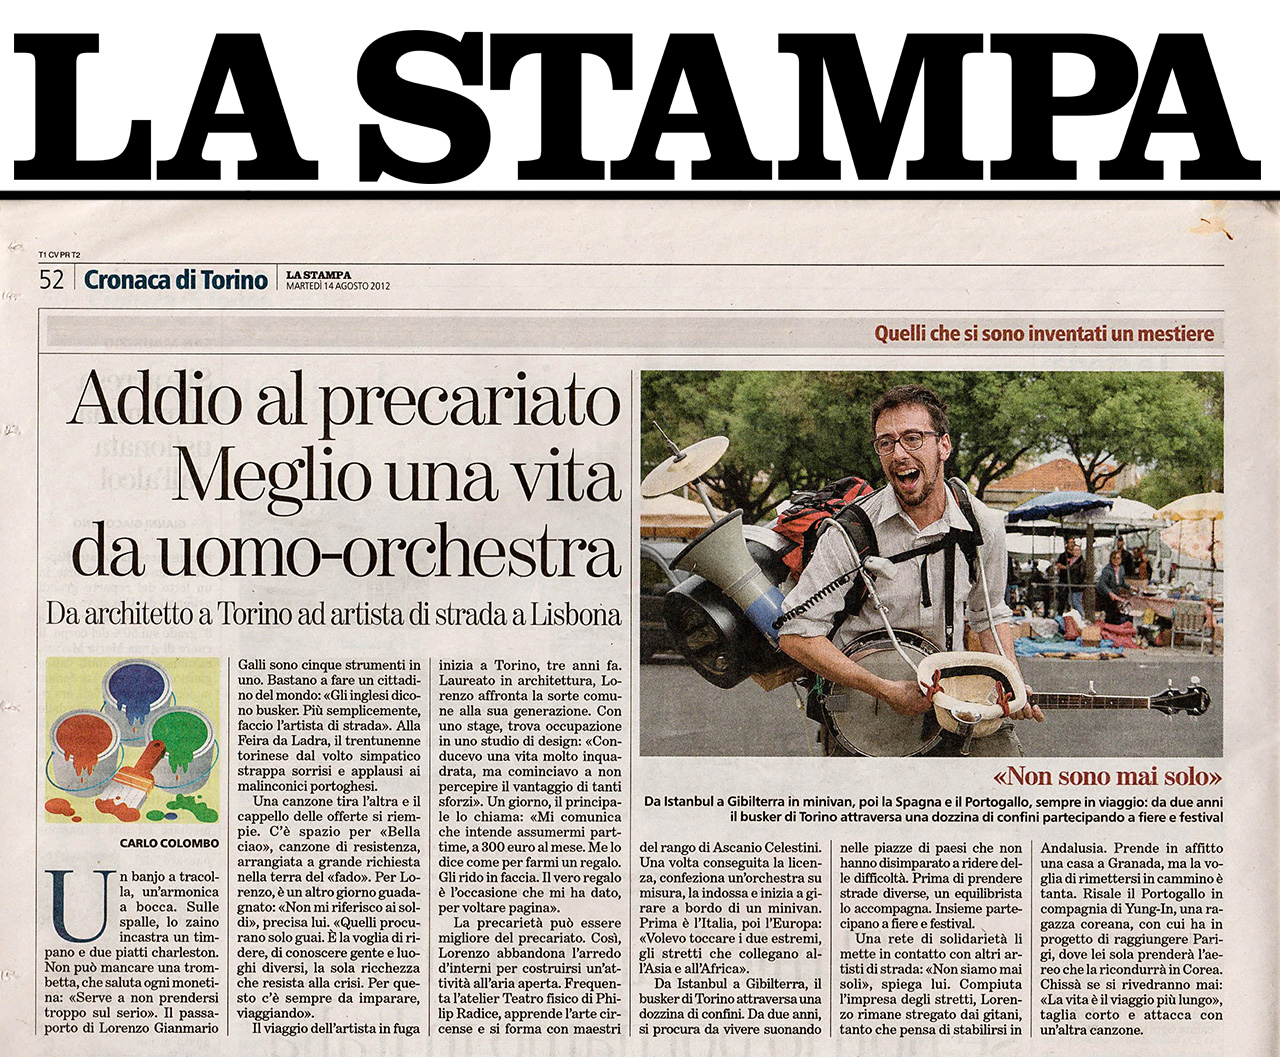 2012, La stampa, ITALY